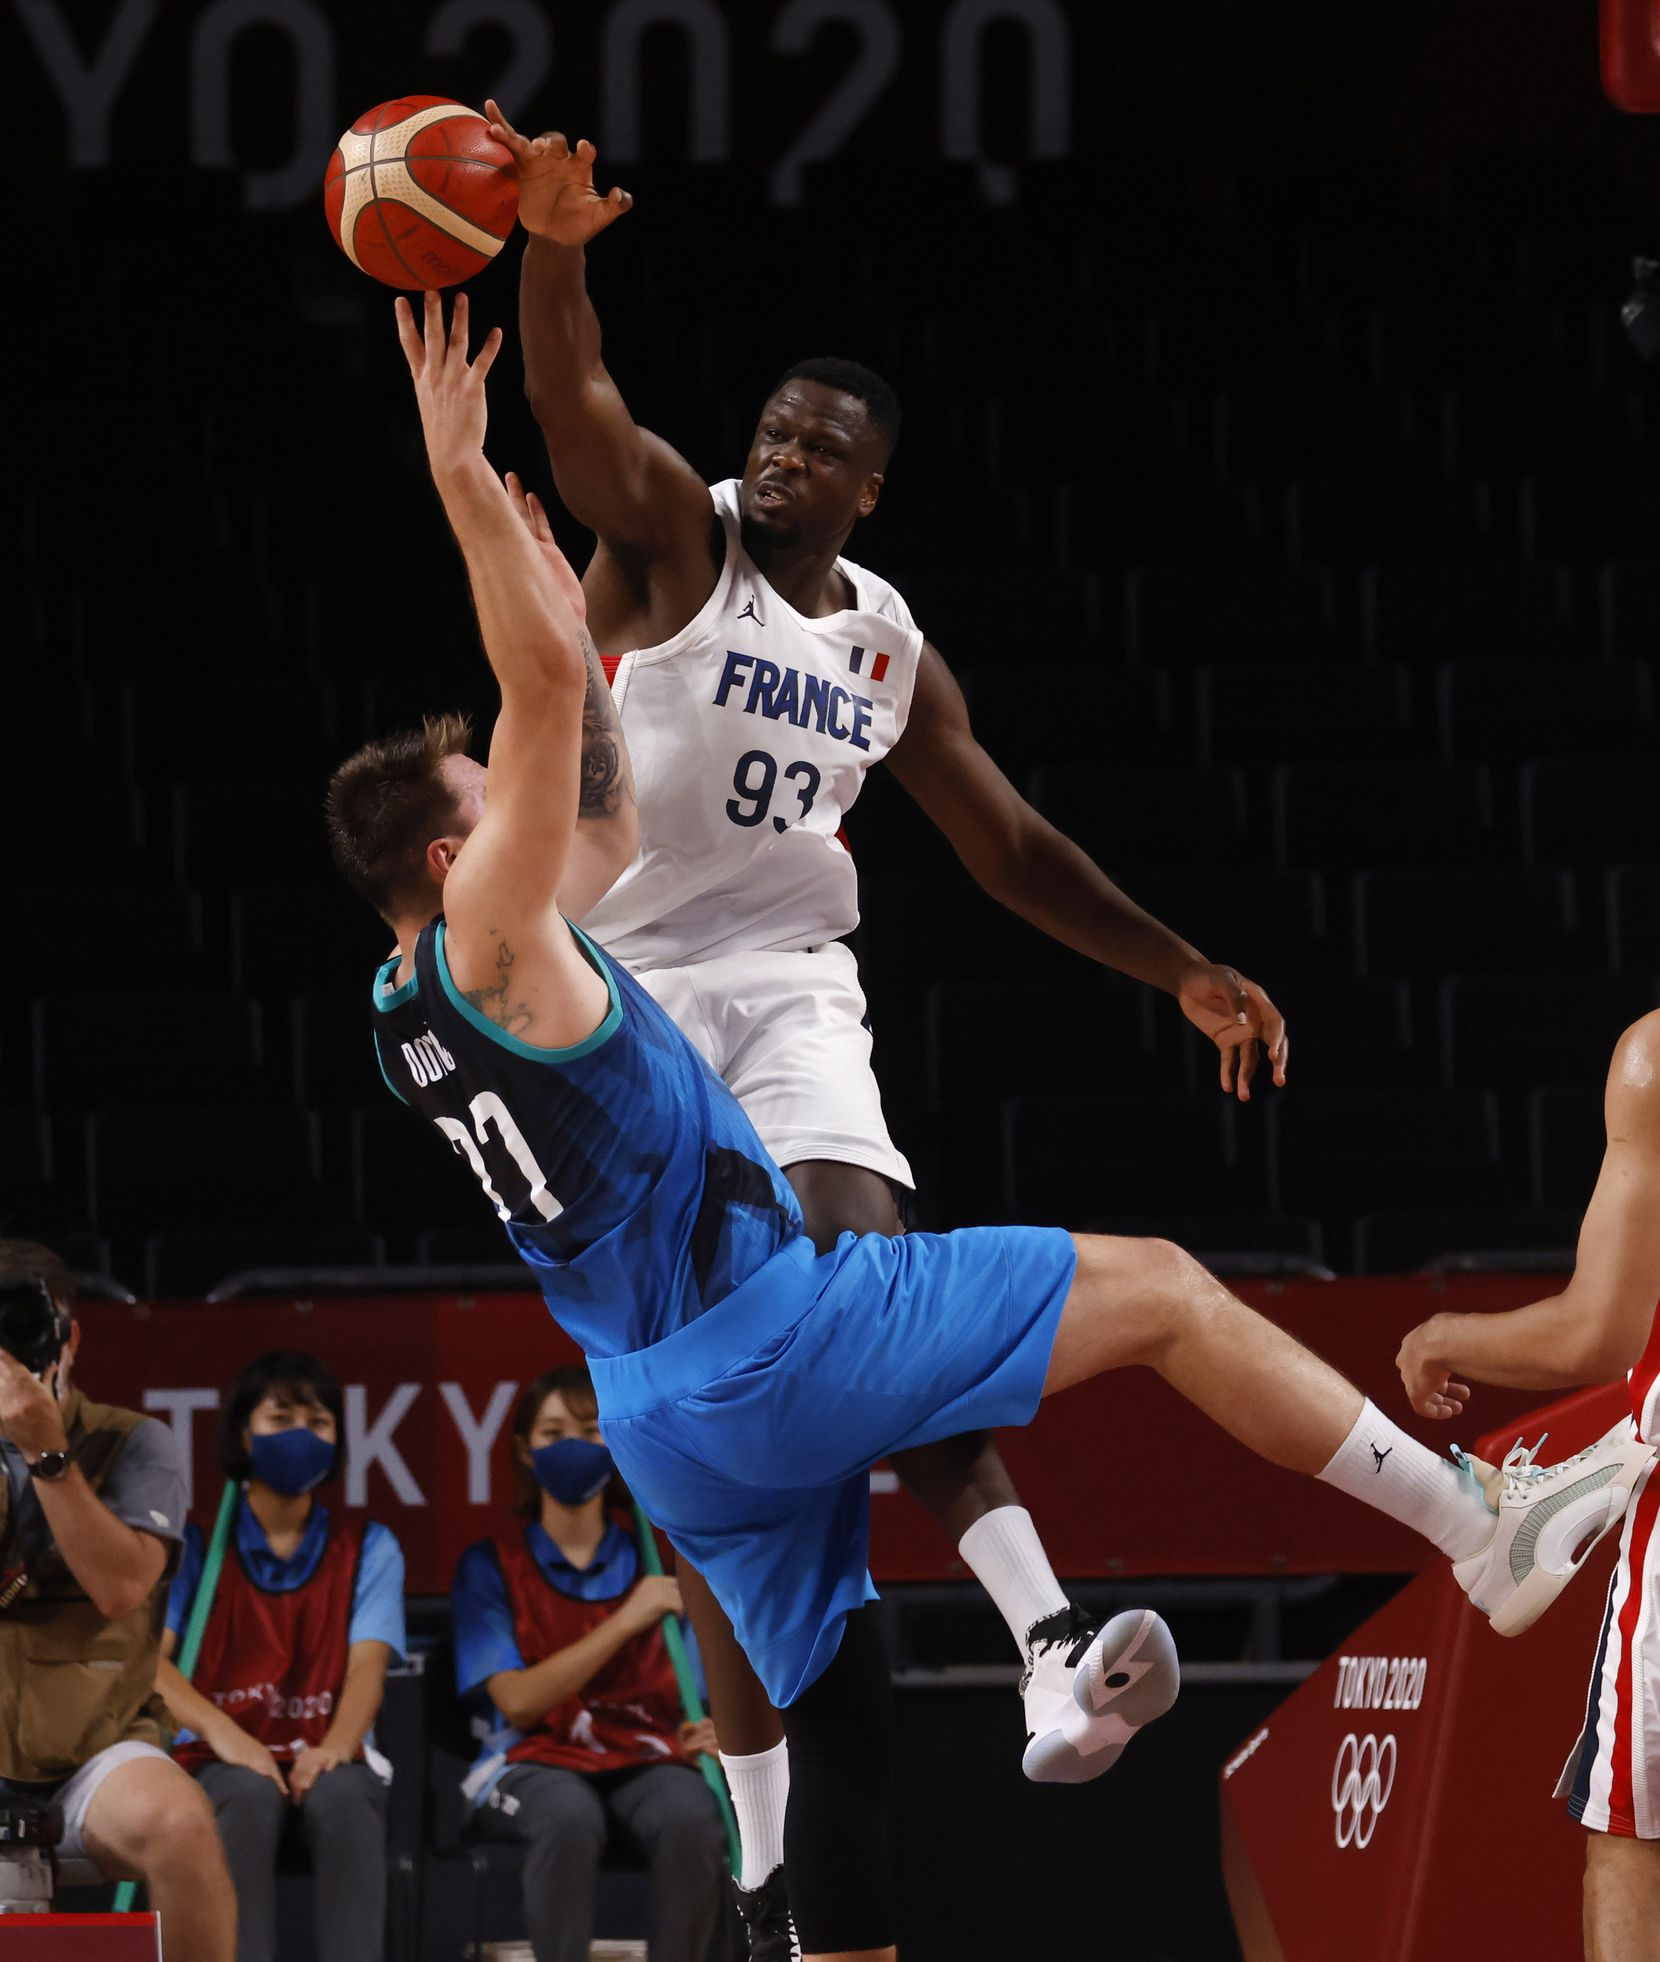 Slovenia's Luka Doncic (77) is fouled by France's Moustapha Fall (93) during the second half of a men's basketball semifinal at the postponed 2020 Tokyo Olympics at Saitama Super Arena, on Thursday, August 5, 2021, in Saitama, Japan. France defeated Slovenia 90-89. Slovenia will play in the bronze medal game. (Vernon Bryant/The Dallas Morning News)